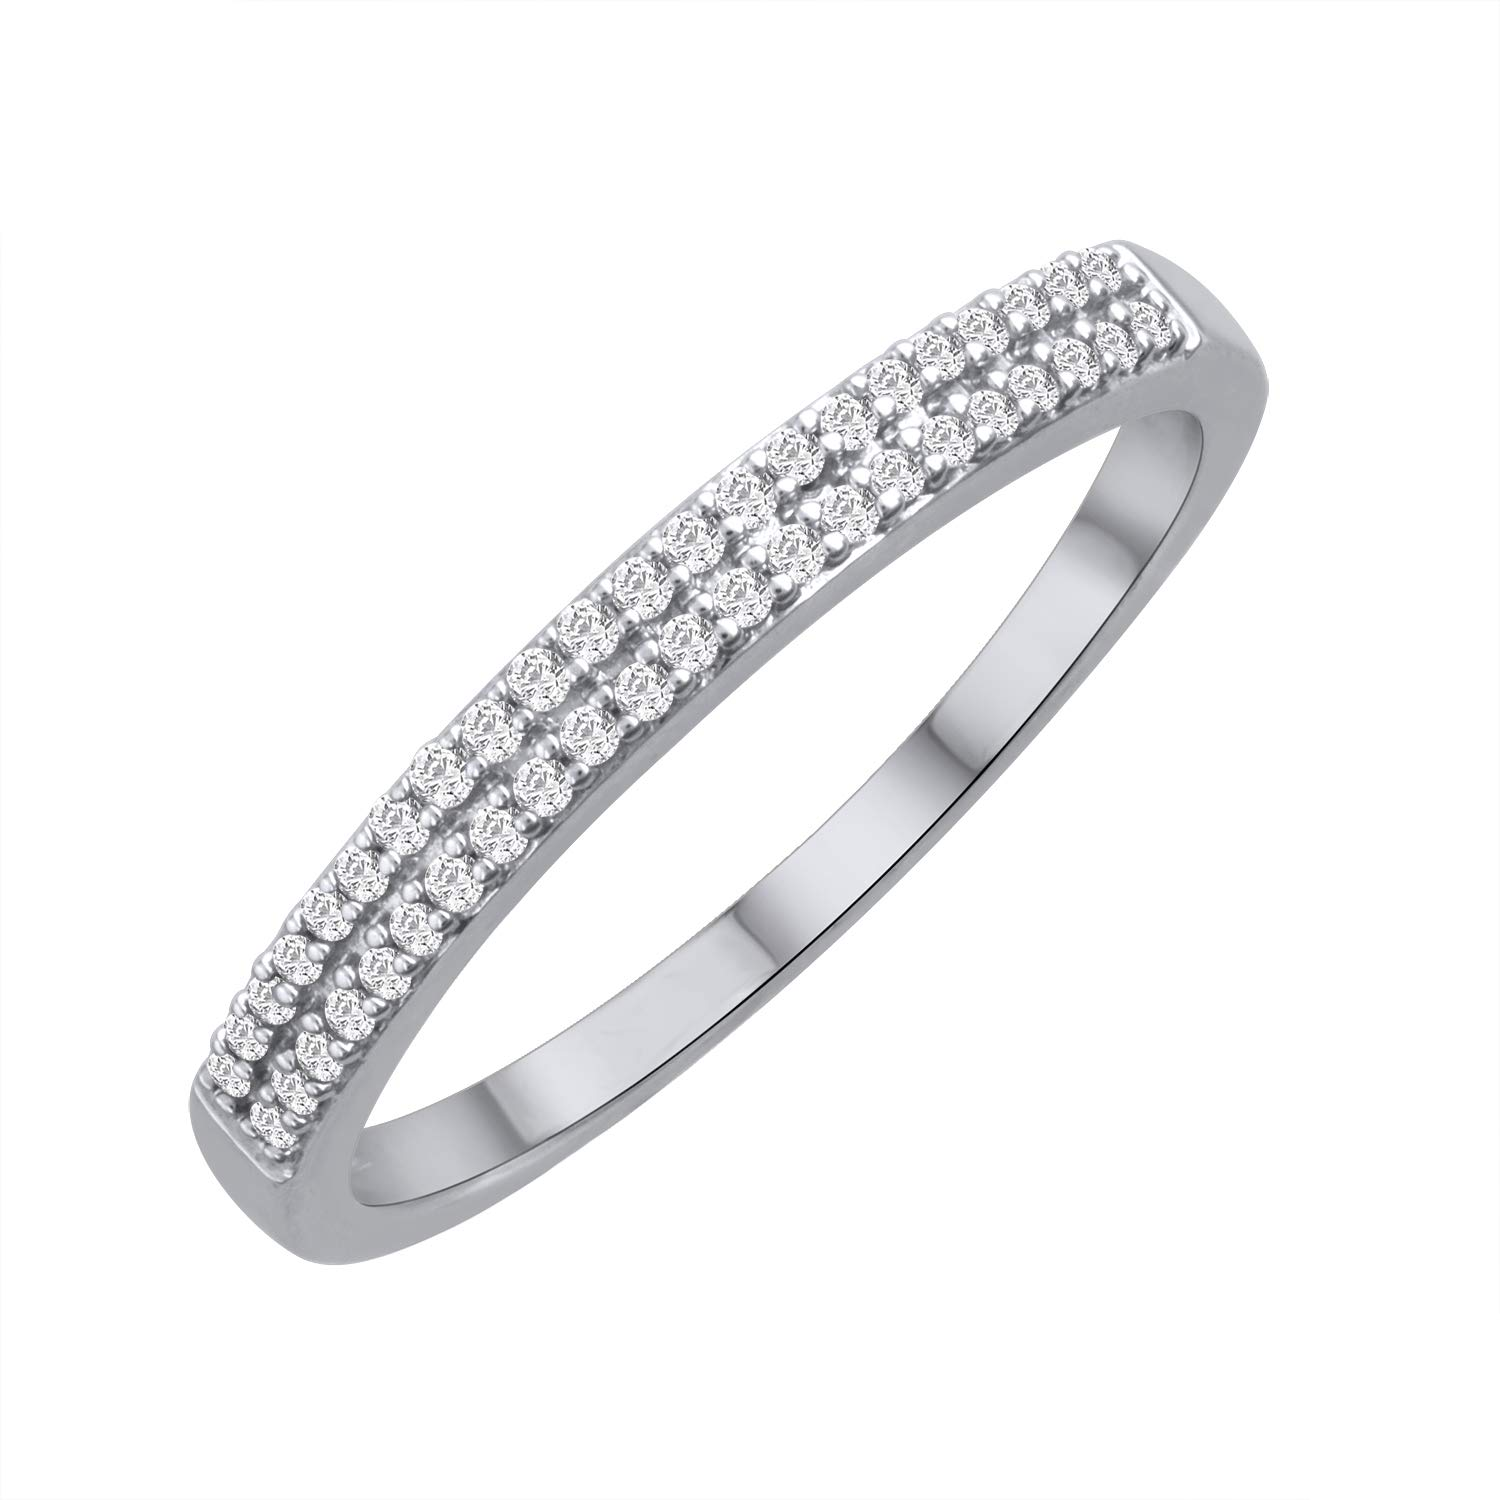 10k White Gold Two Row Diamond Stackable Band Ring (0.12 cttw, H-I Color, I3 Clarity), Size 7